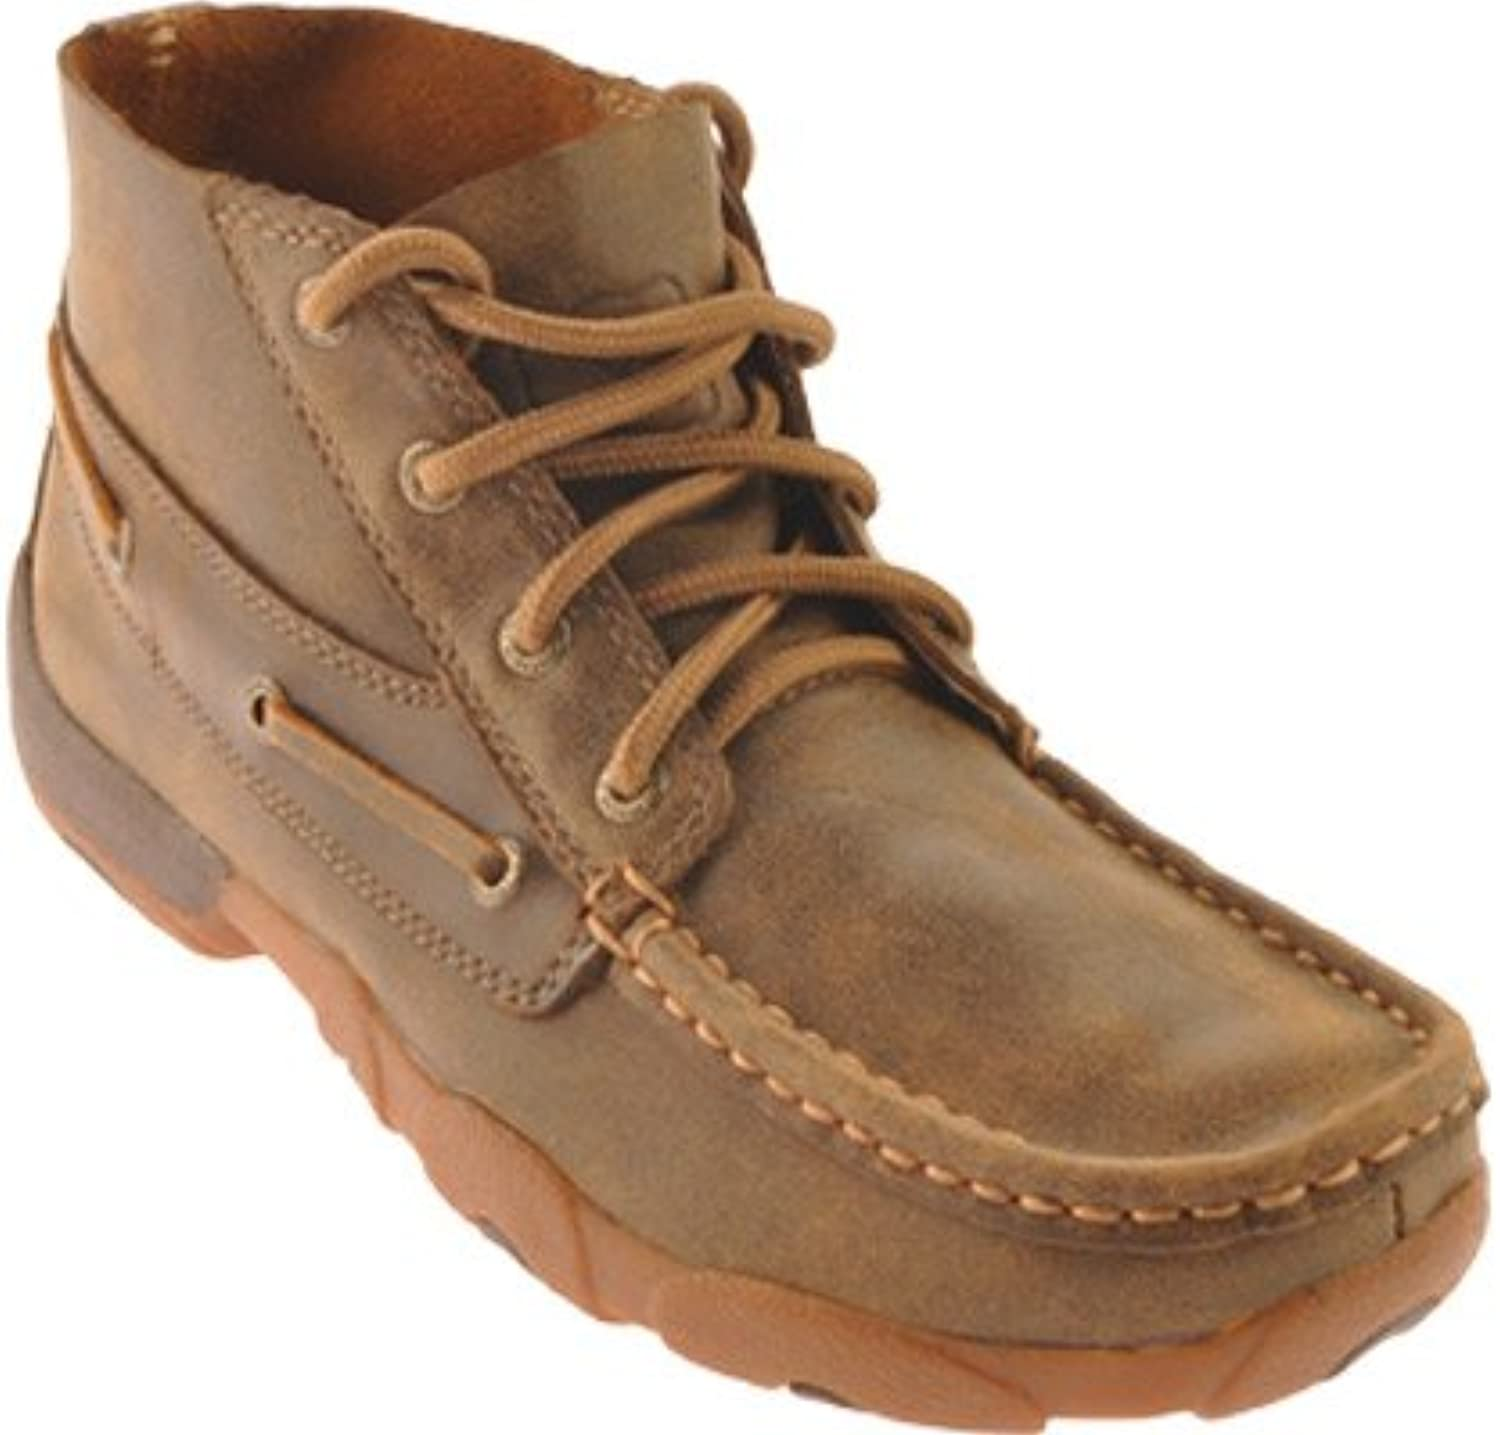 Twisted X Boots Men's MDM0007,Bomber Leather,US 11.5 W